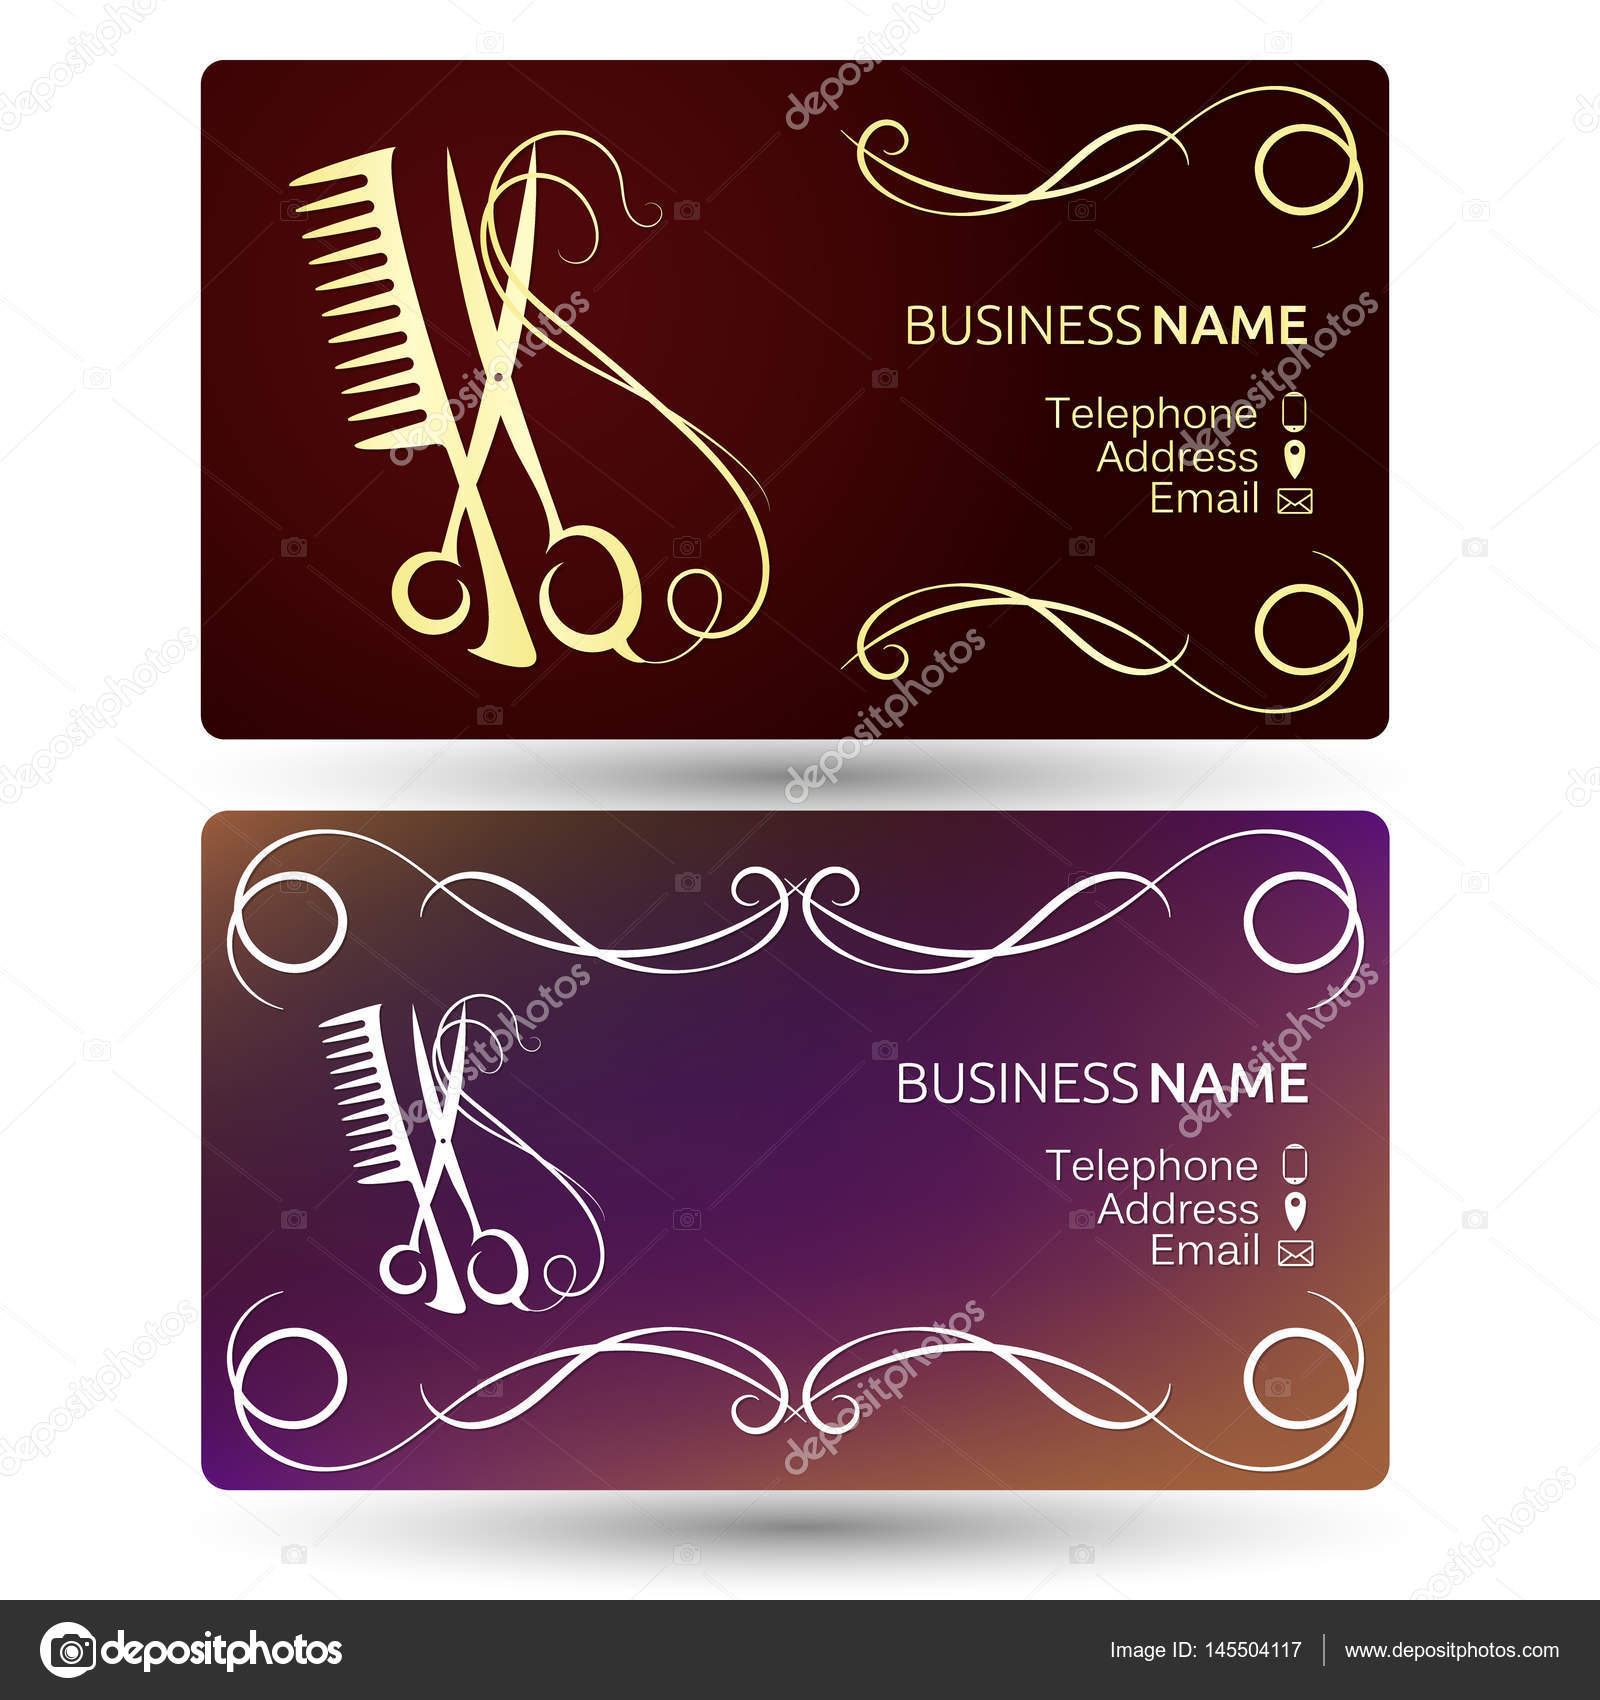 Beauty salon business card template stock vector john1279 145504117 beauty salon and hairdresser business card template vector vector by john1279 reheart Choice Image